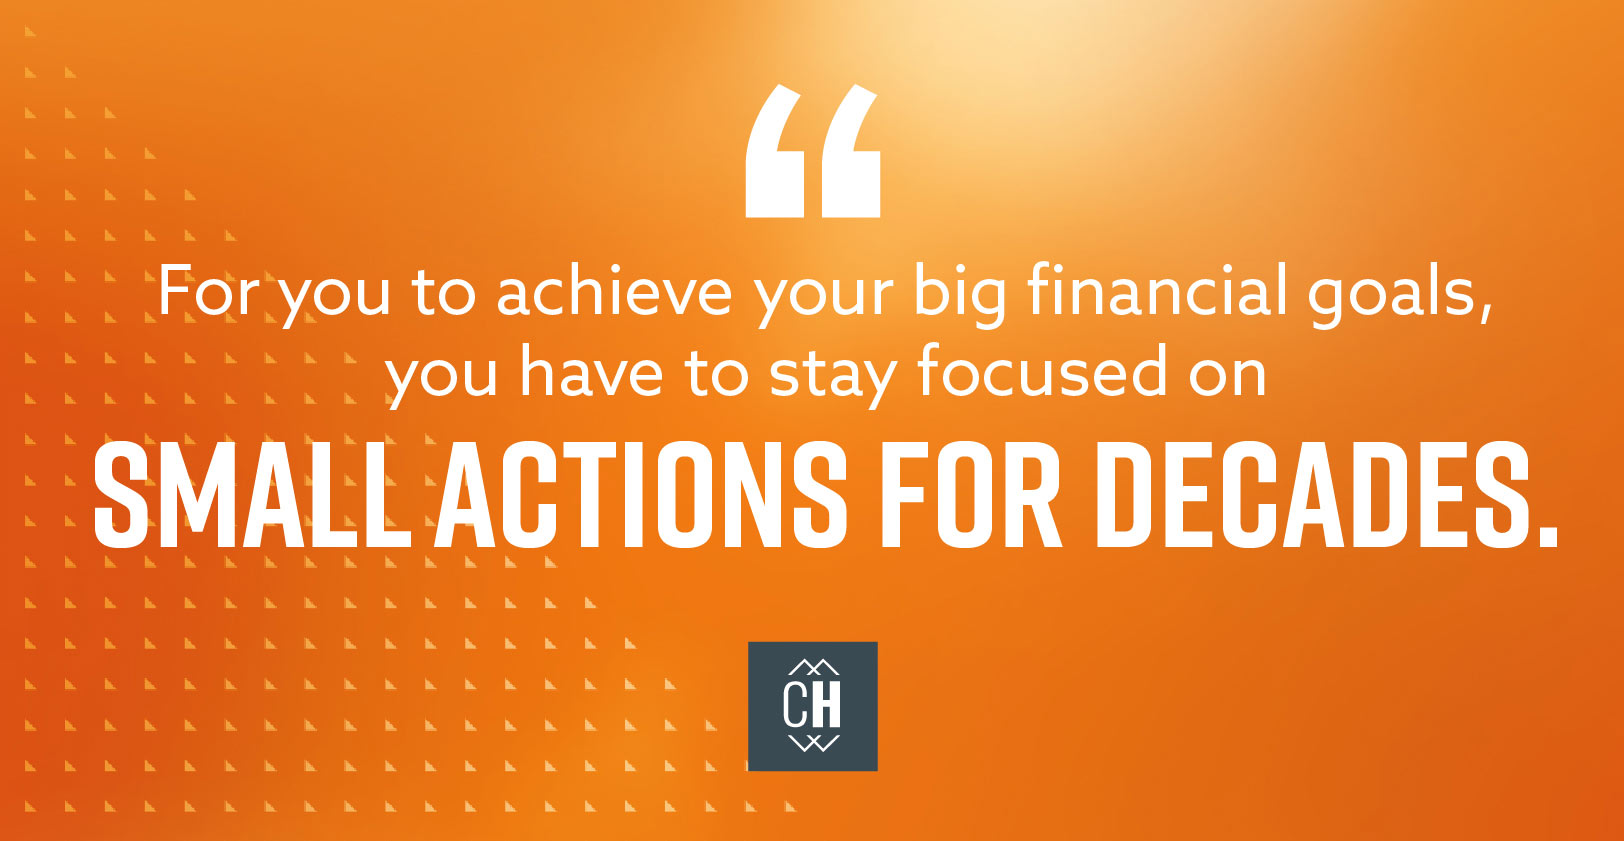 For you to achieve your big financial goals, you have to stay focused on small actions for decades